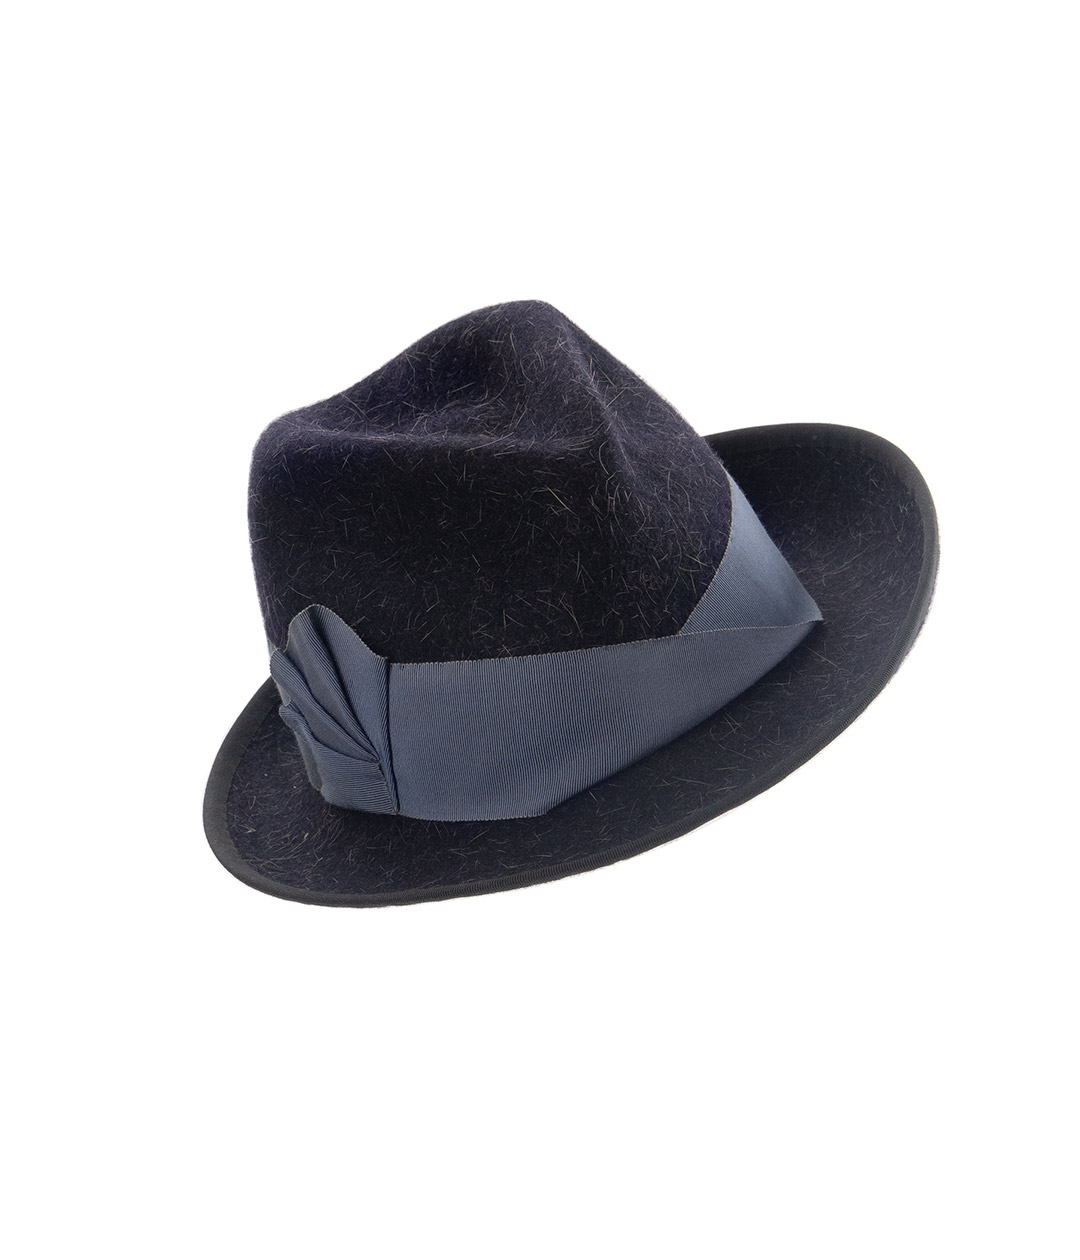 Perching trilby. Fedora hat made in Vermont.